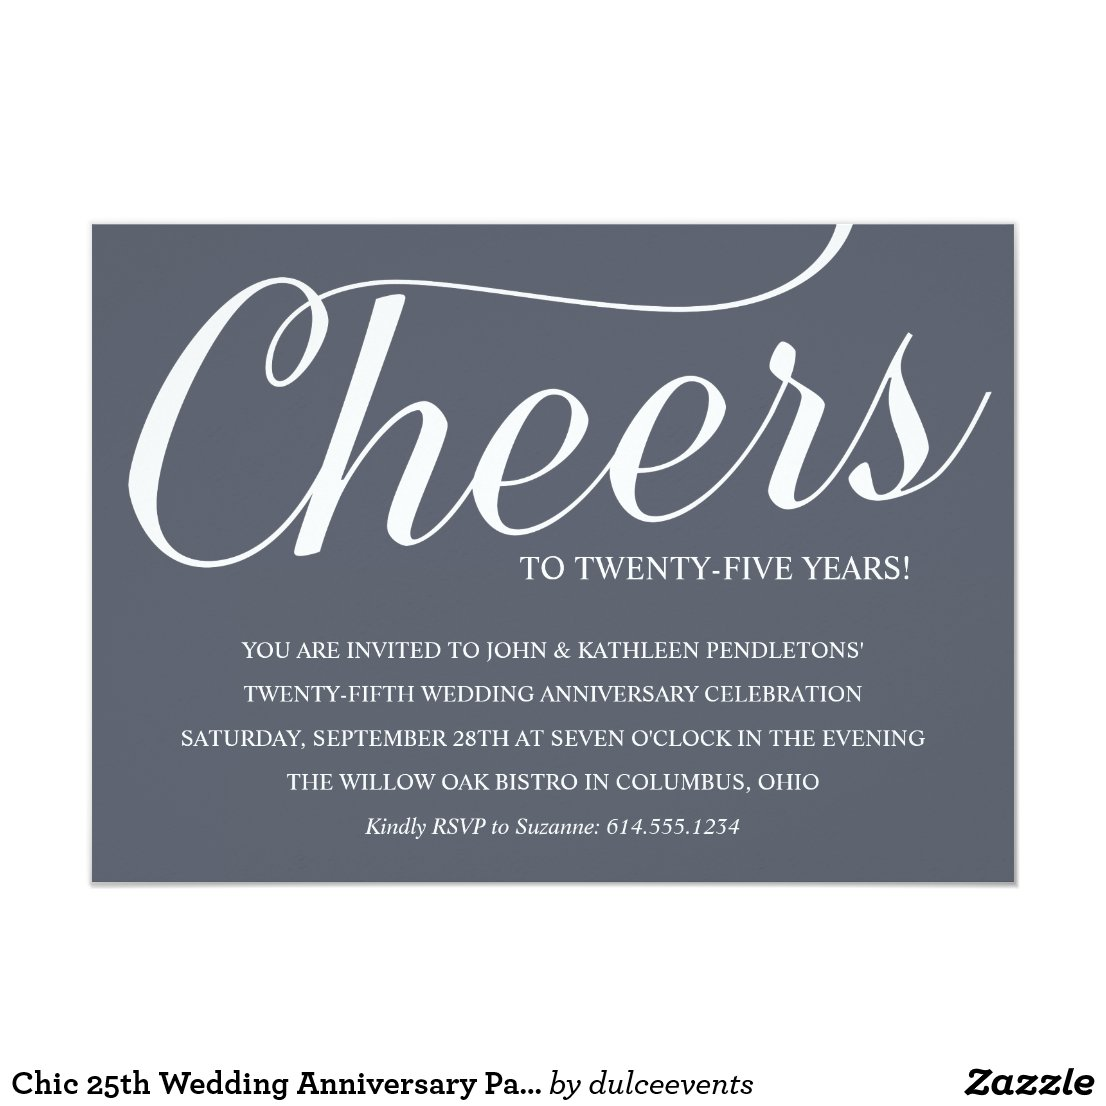 Chic 25th Wedding Anniversary Party Invitation